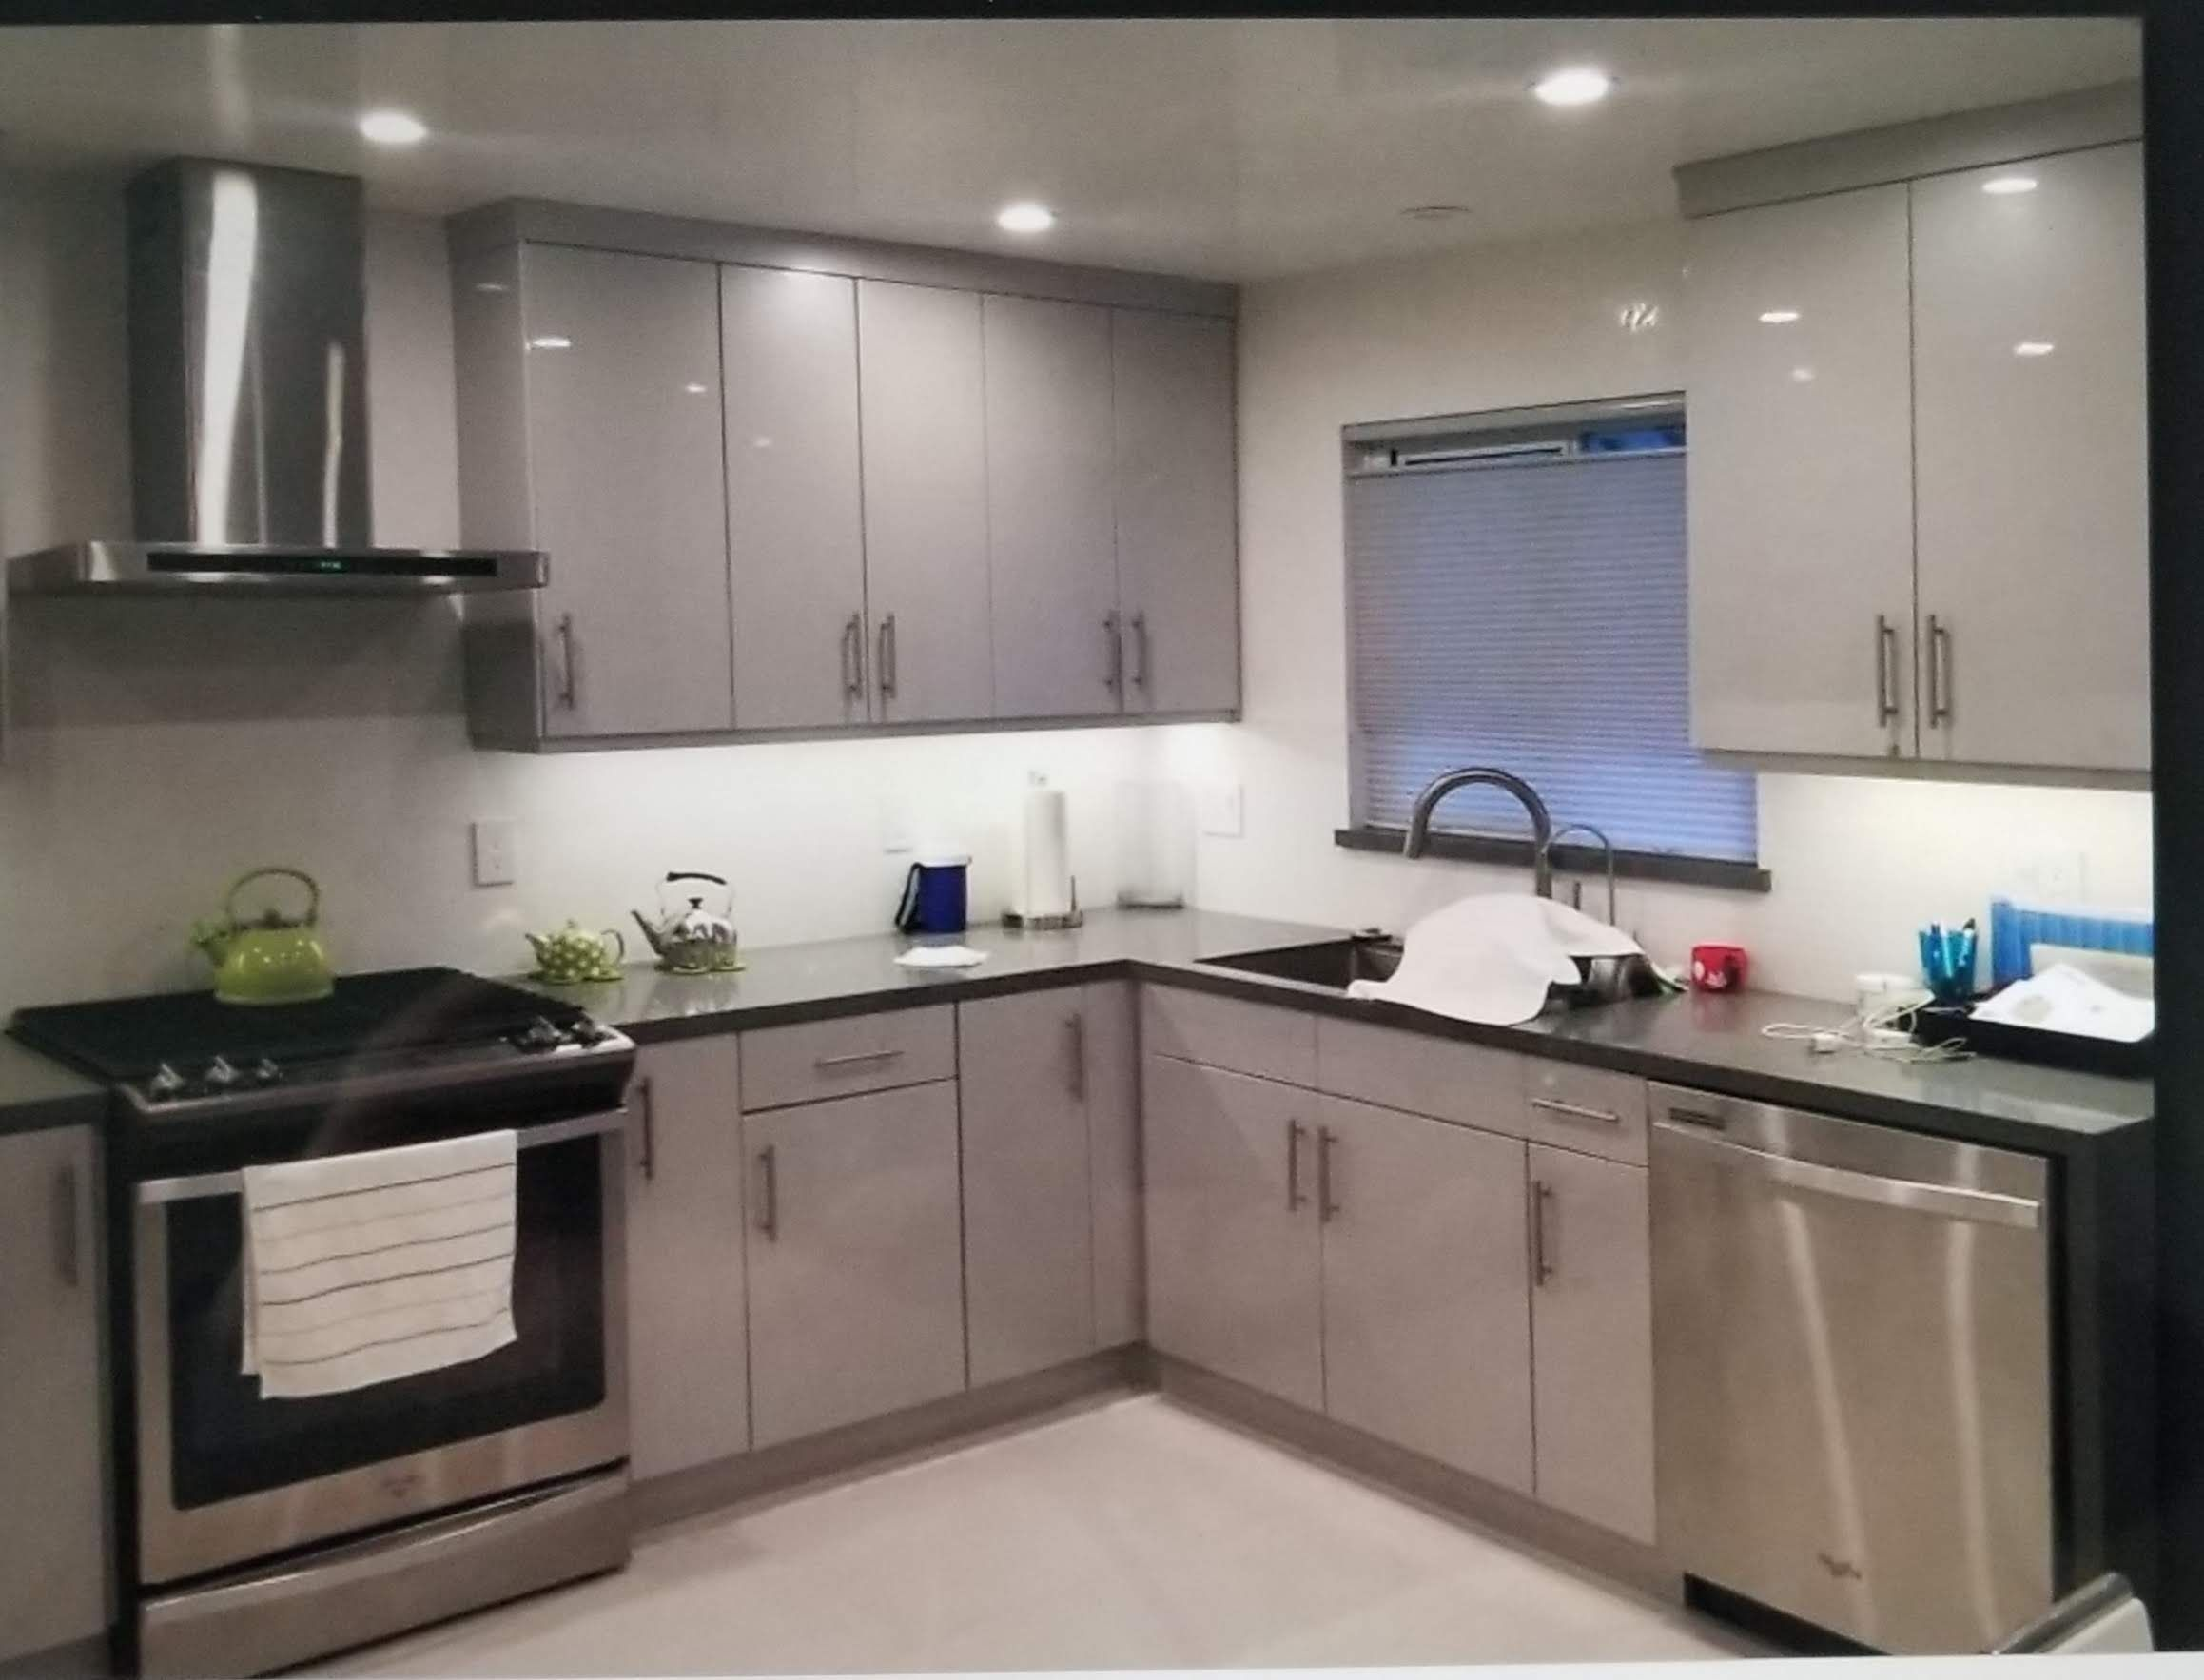 Really Like The Flat Panel Frameless Cabinets Kitchen Cabinets European Style Kitchen Cabinet Styles European Kitchen Design